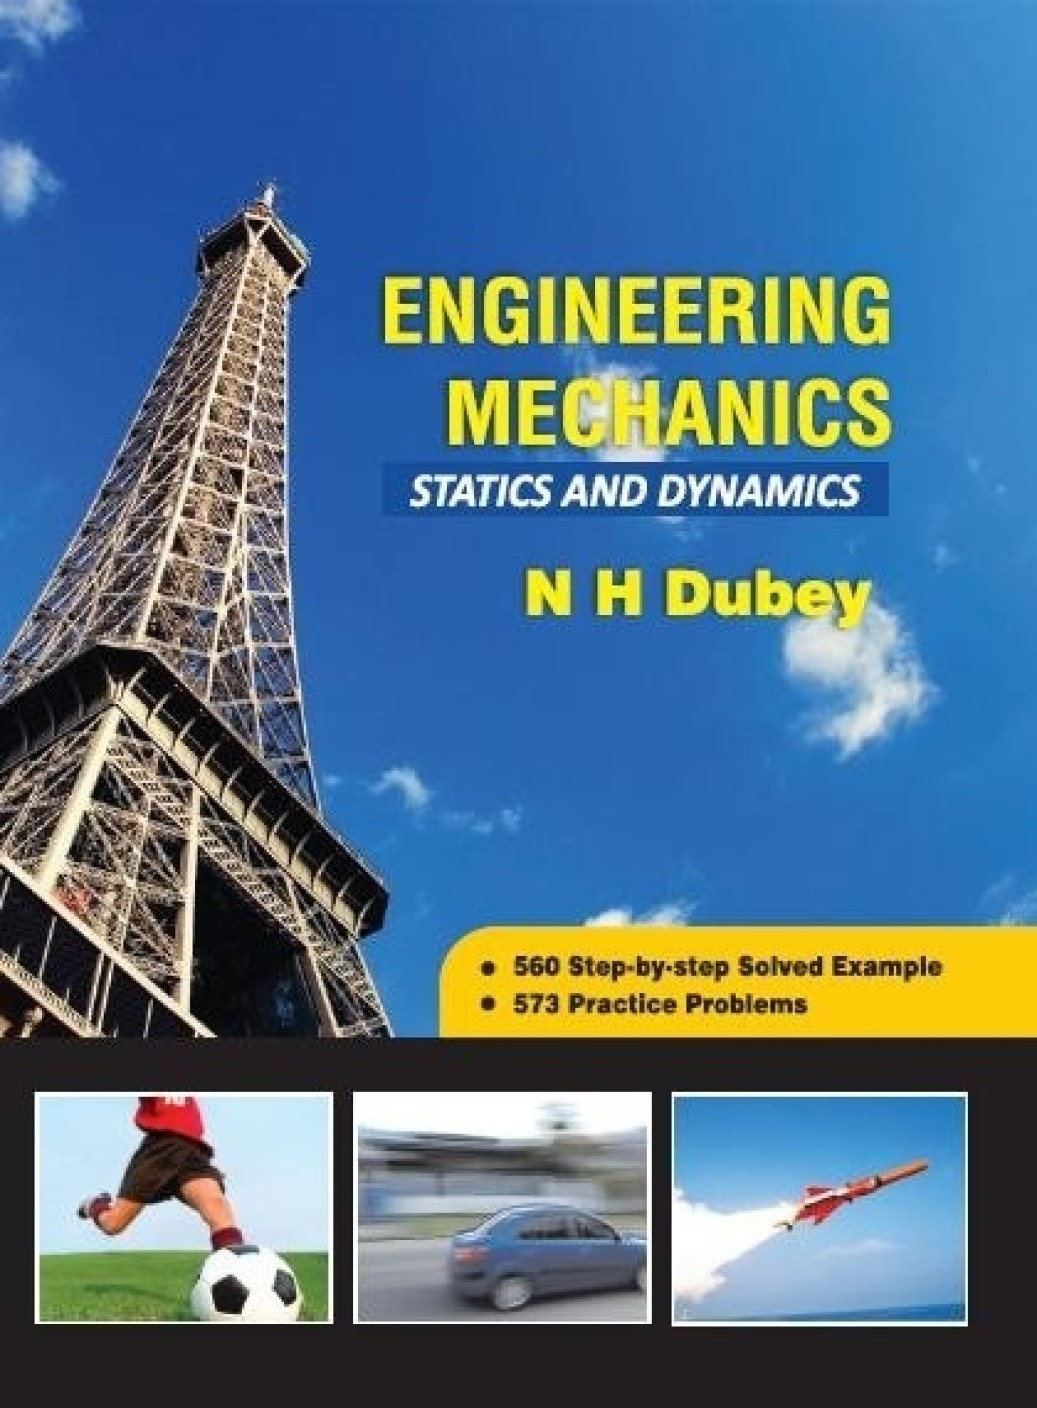 engineering mechanics Mechanical engineering pushes the limits of the possible - the ultra-efficient and hyper-fast, the maximally enduring and most sustainable, the fully autonomous and the super-controlled.